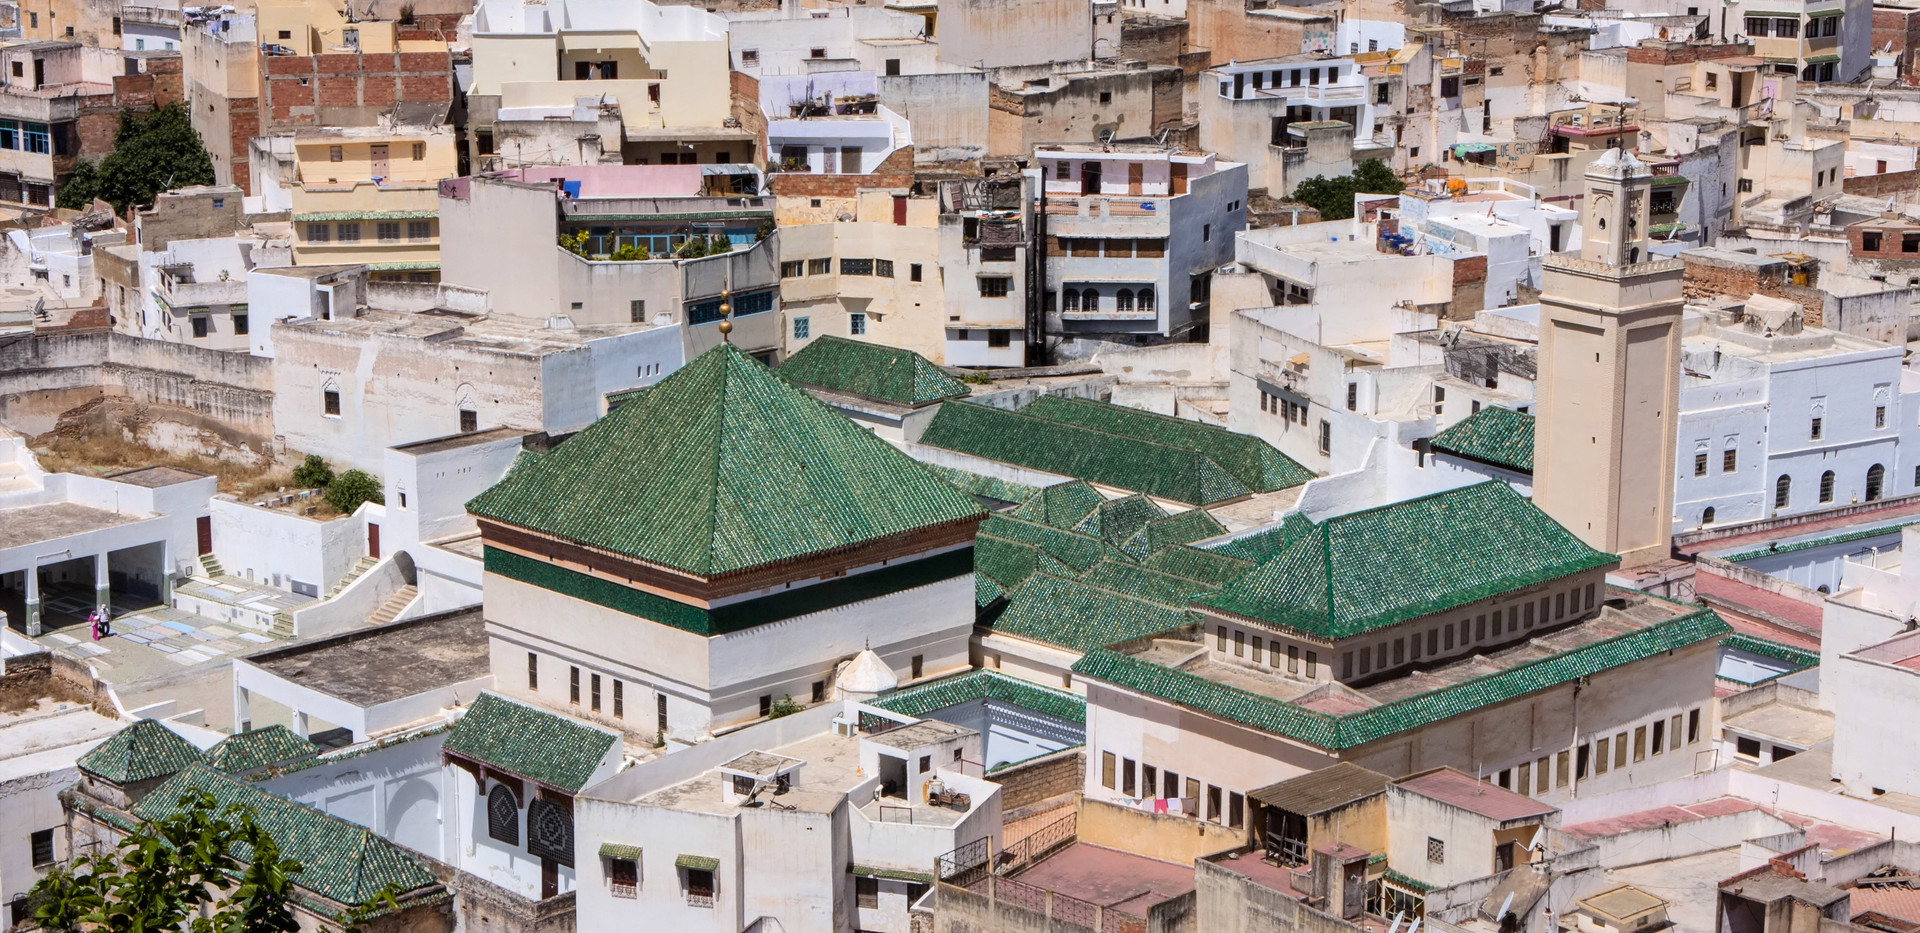 view of rooftops Meknes, Morocco.jpg